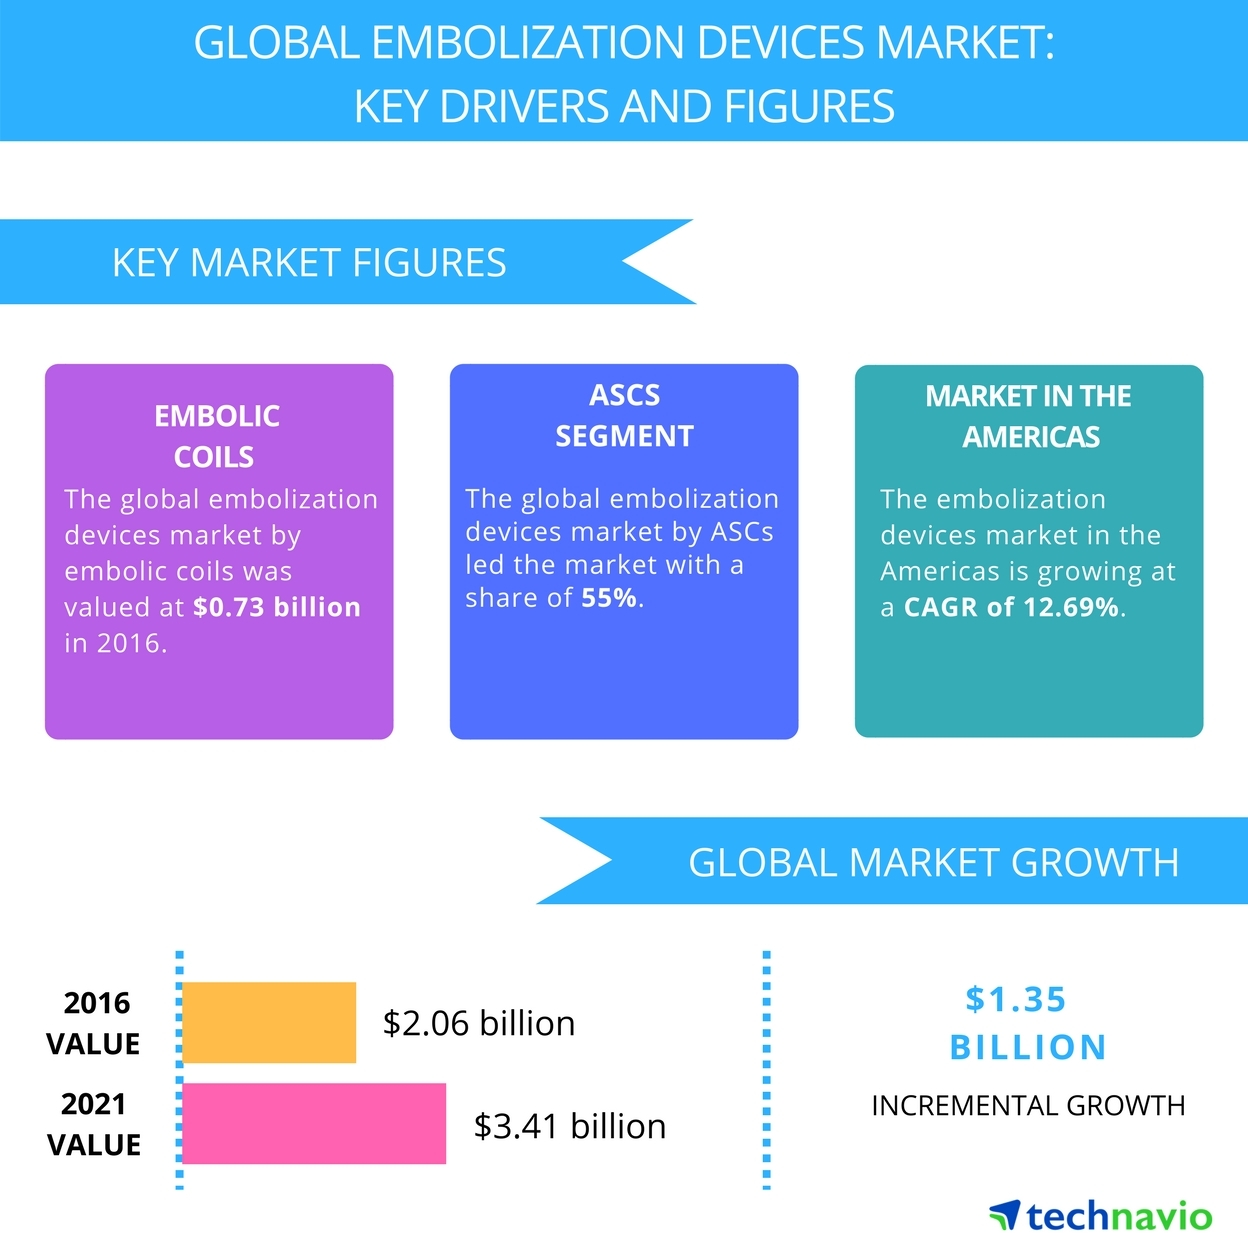 top 3 emerging trends impacting the global embolization devices rh businesswire com Wiring Device for Guitar Cooper Wiring Devices Color Chart